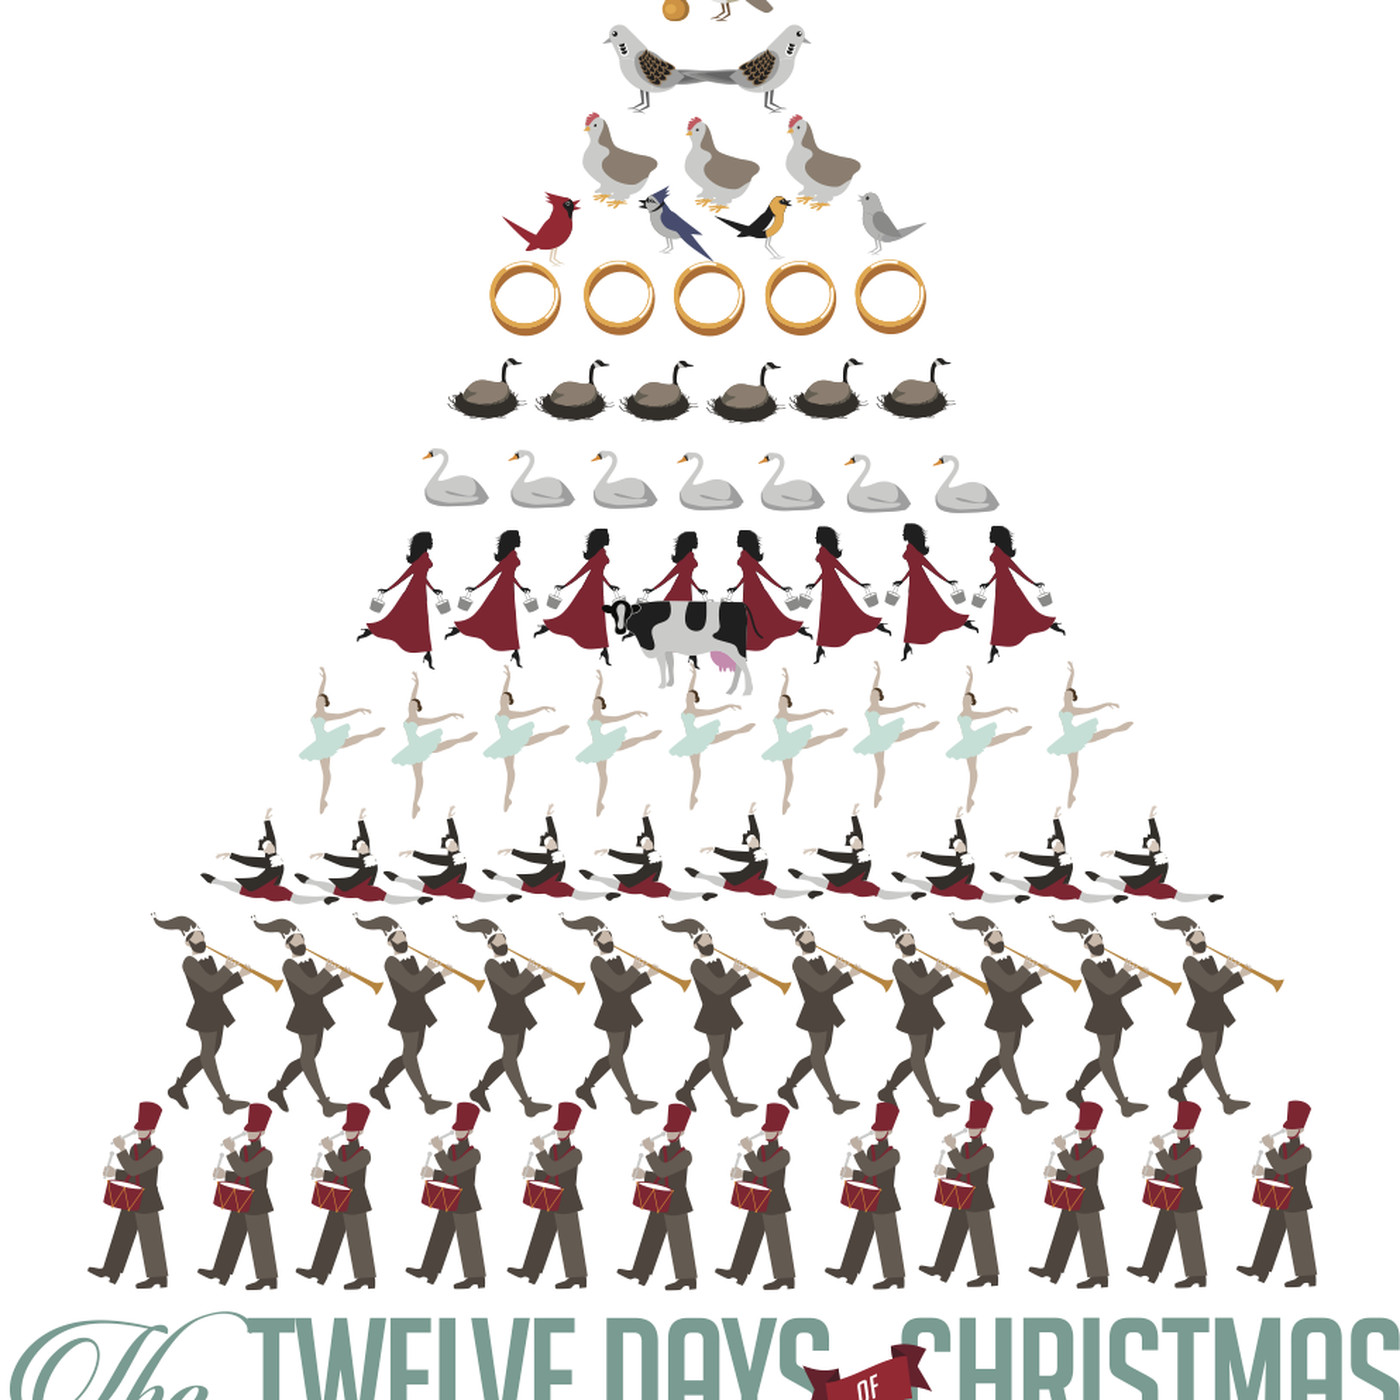 How Many Days Of Christmas Are There.The 12 Days Of Christmas Explained The Story Behind The